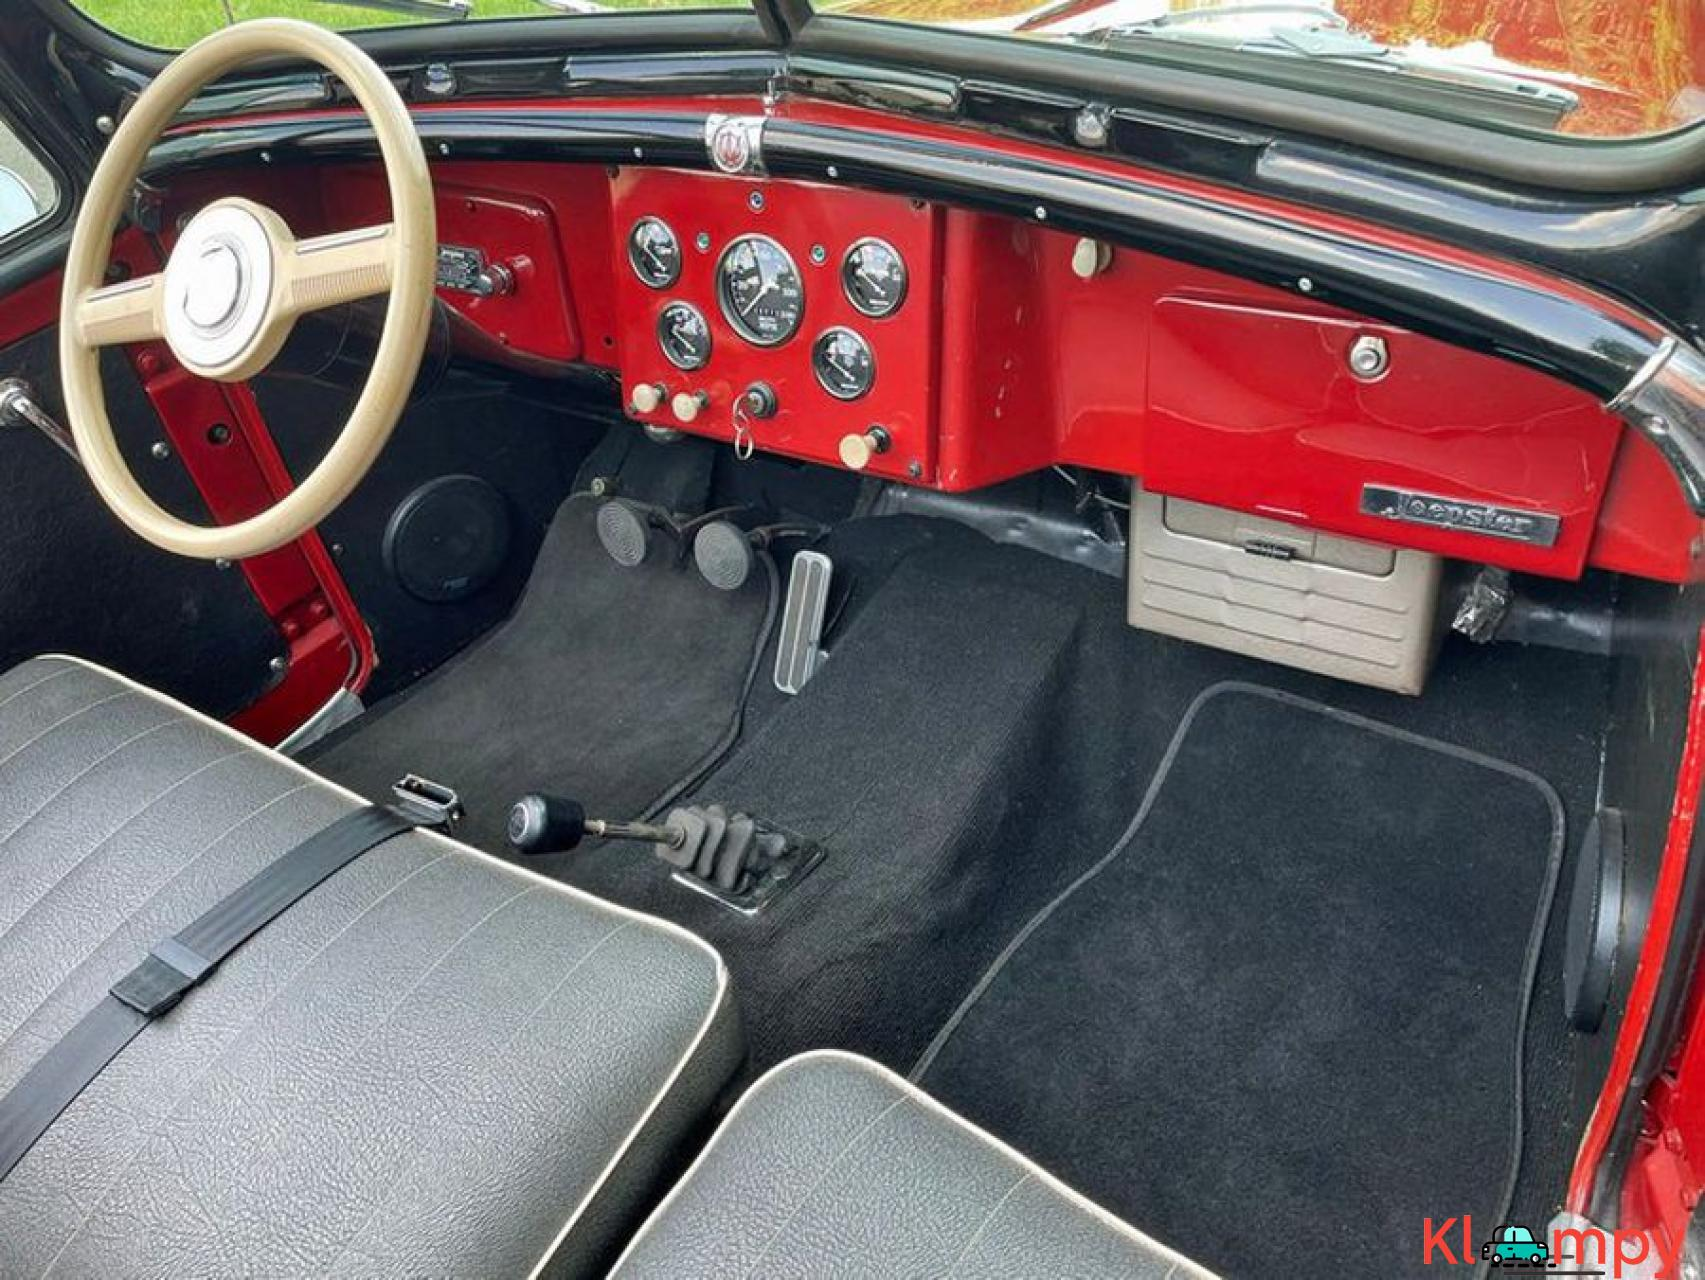 1948 Willys Jeepster Convertible GM 2.5 liter 4 cyl - 7/16